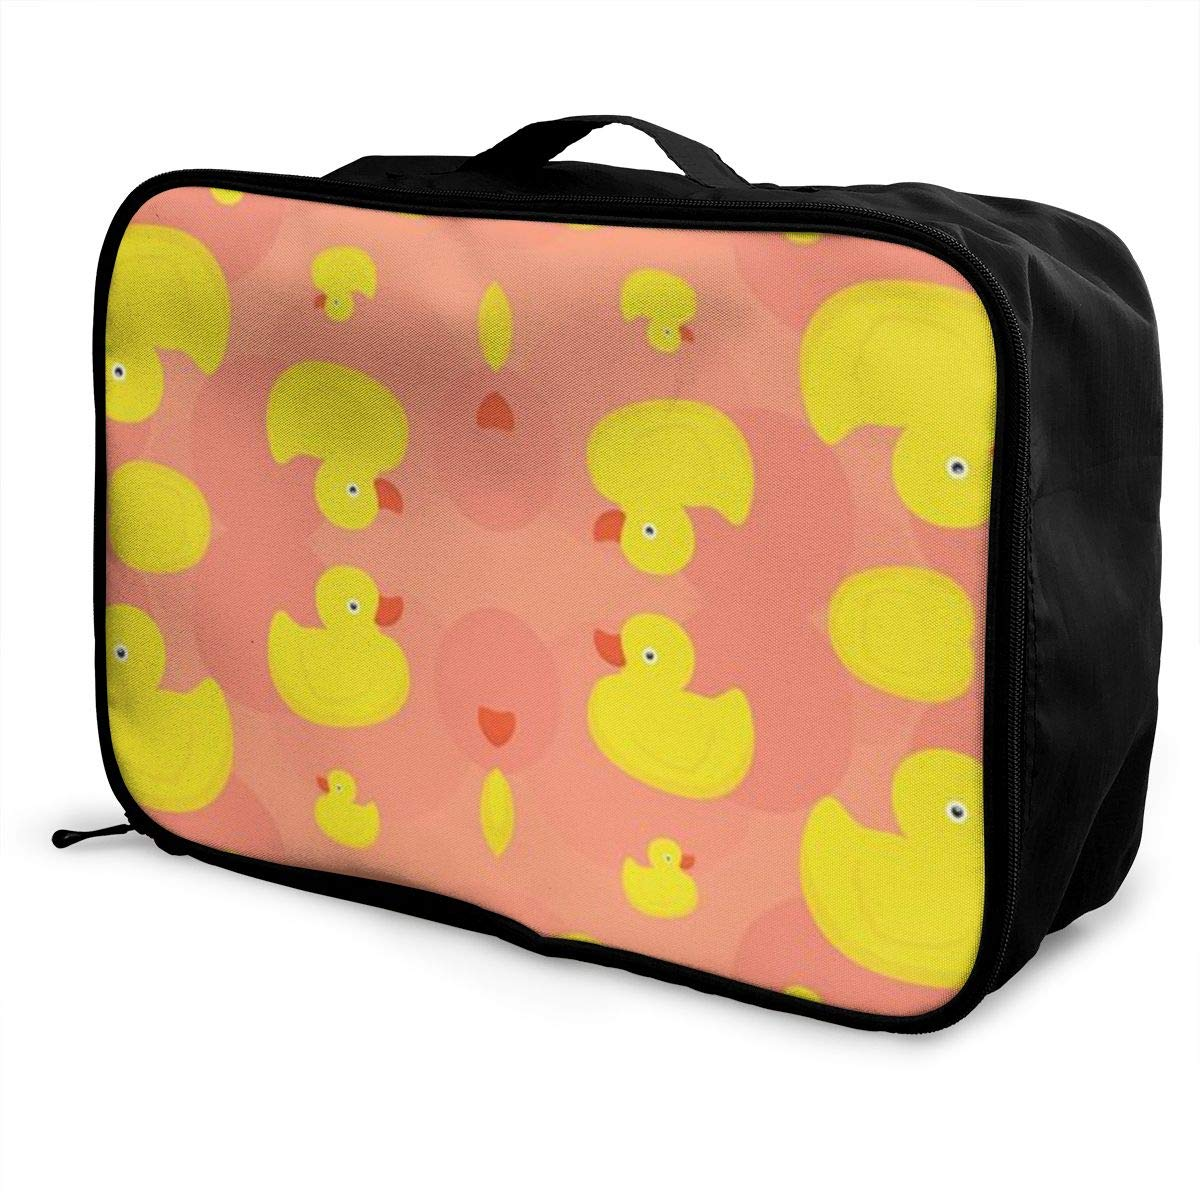 Pink Canvas Travel Weekender Bag,Fashion Custom Lightweight Large Capacity Portable Luggage Bag,Suitcase Trolley Bag ADGAI Rubber Duck